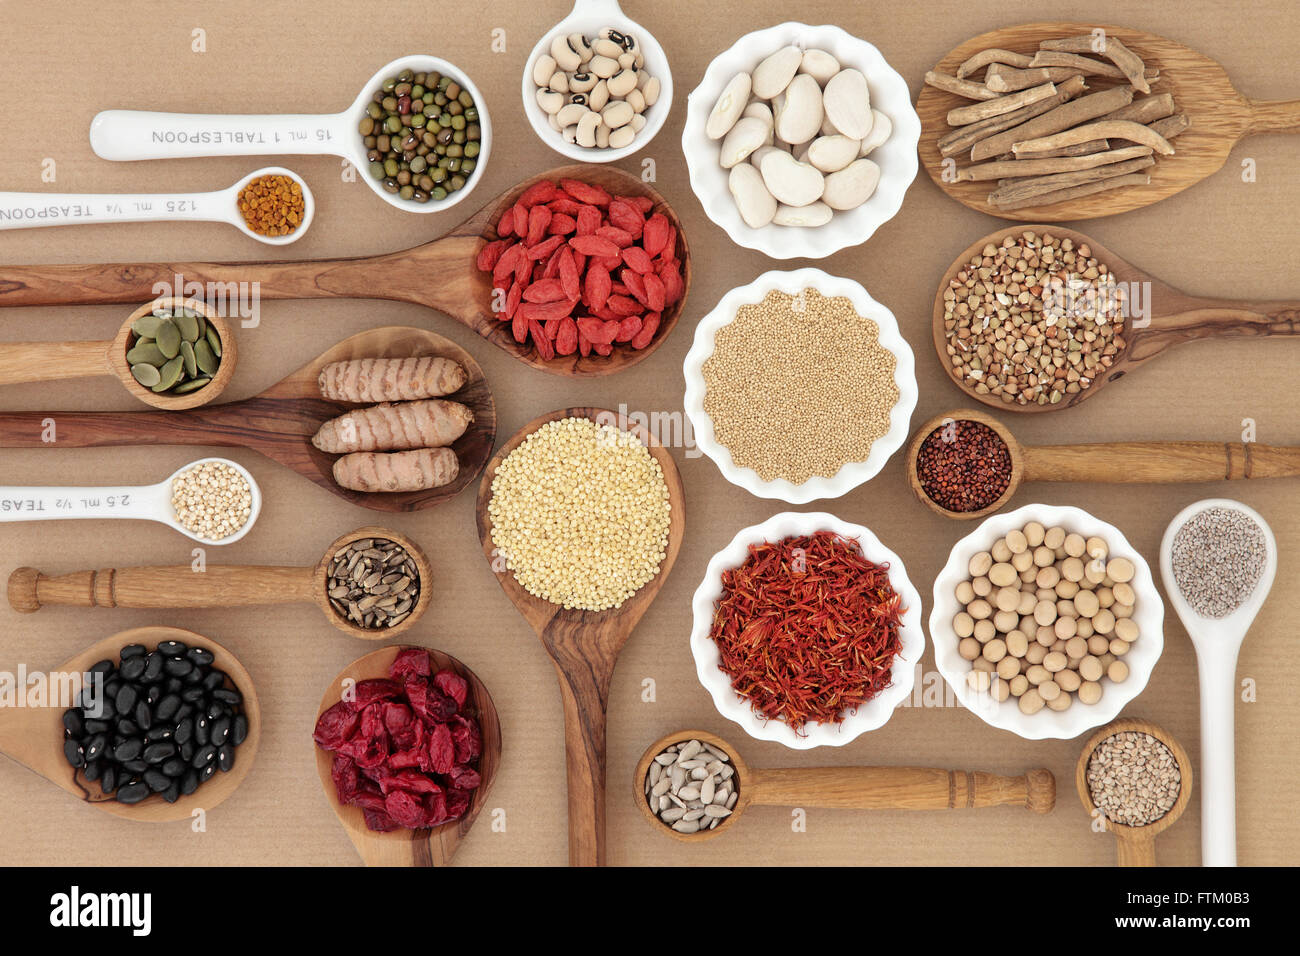 Dried super food selection in spoons and bowls over natural paper background. - Stock Image